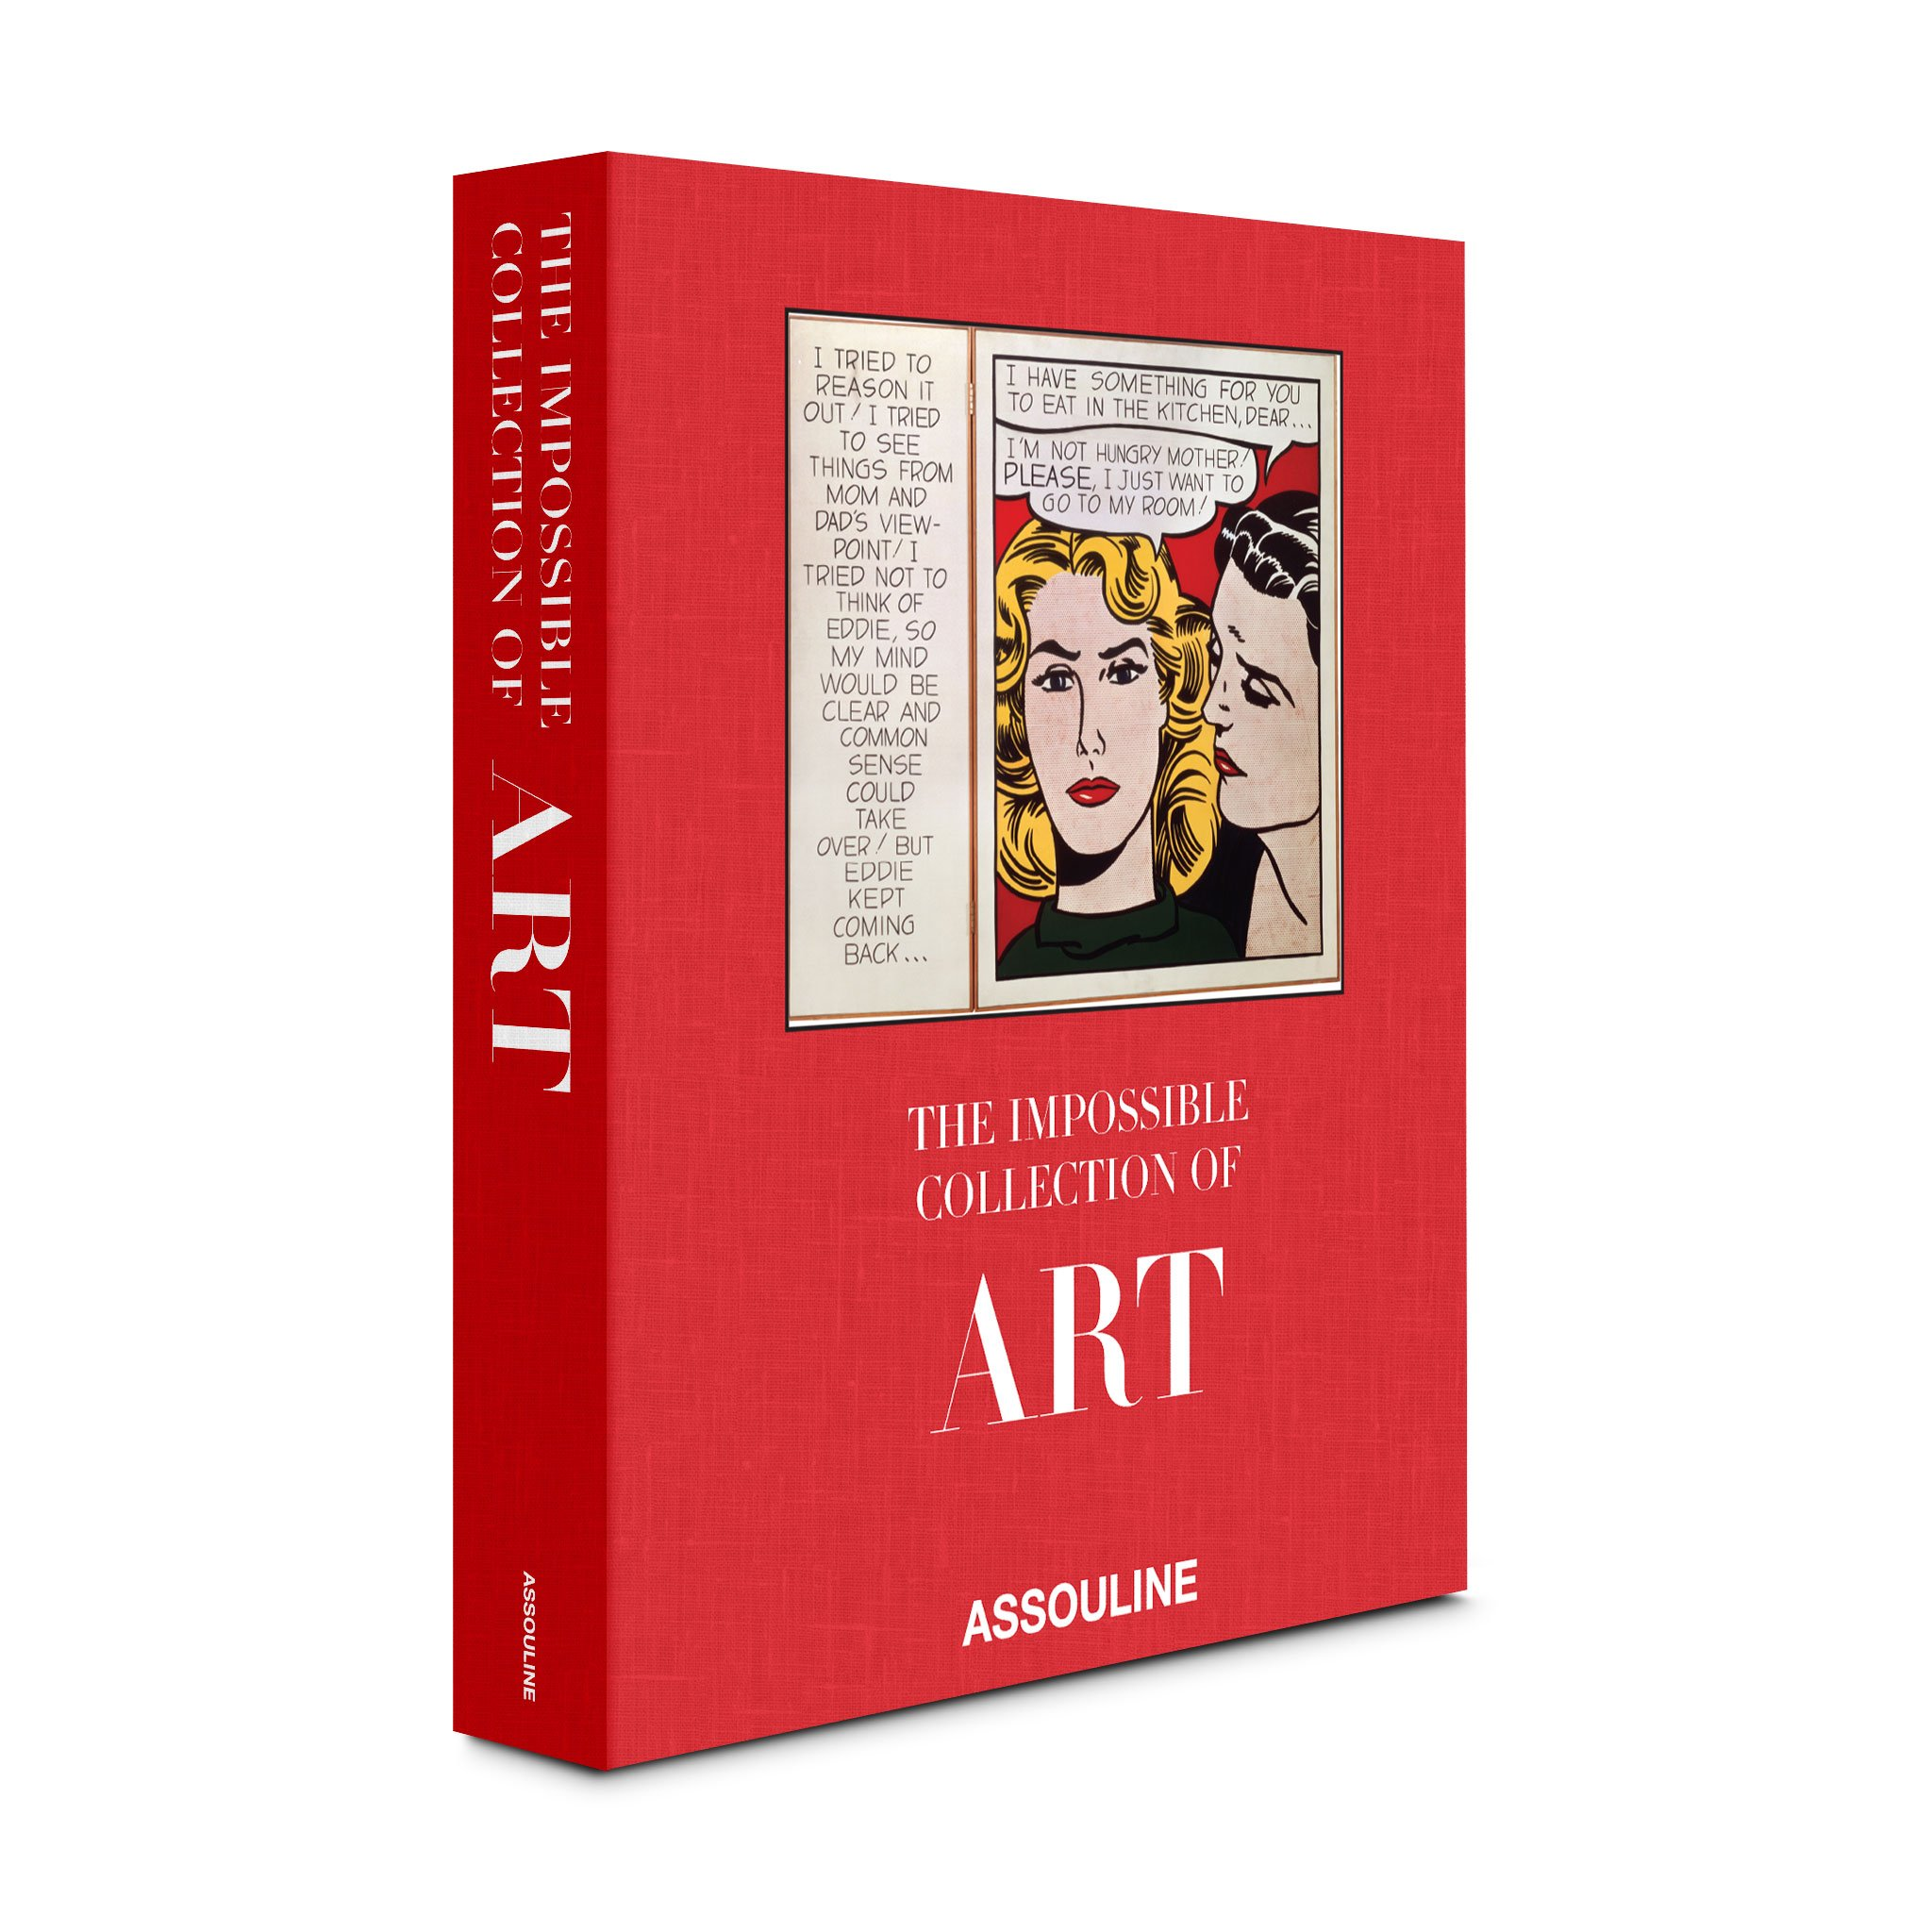 Impossible Collection The 100 Most Coveted Artworks Of The Modern Era Philippe Segalot Franck Giraud Joachim Pissarro 9782759403004 Books